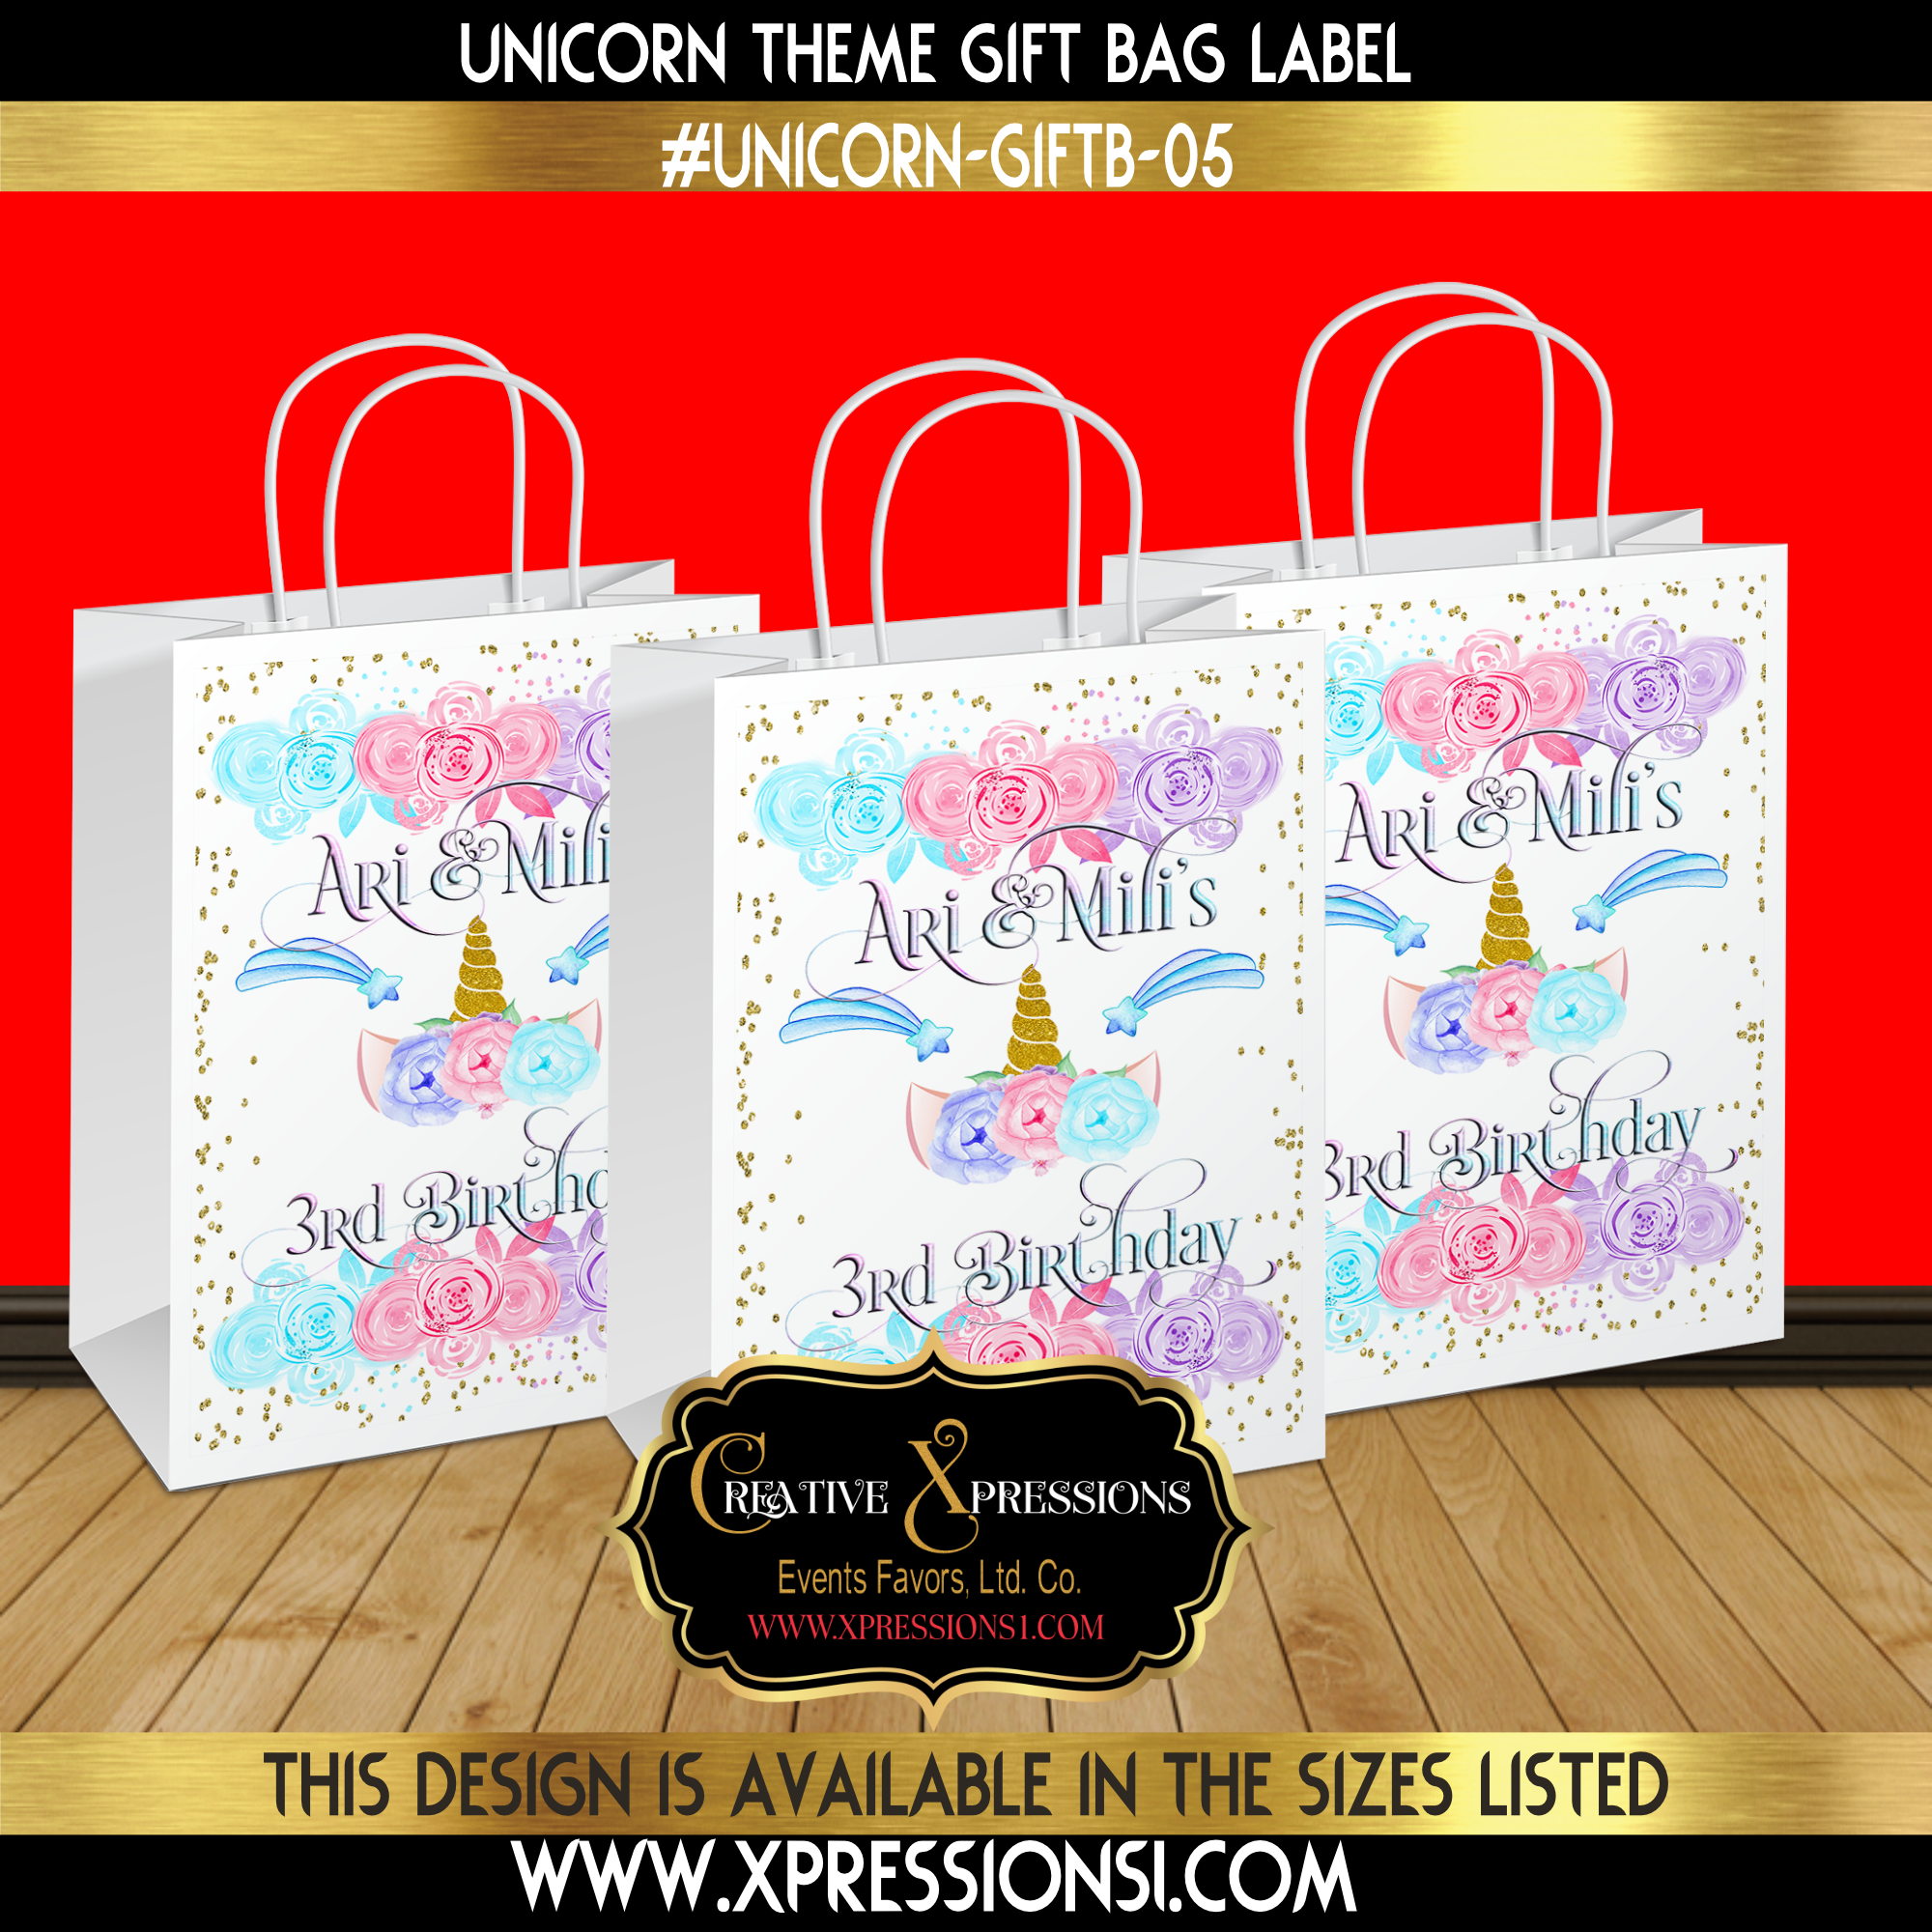 My Pretty Little Unicorn Gift Bag